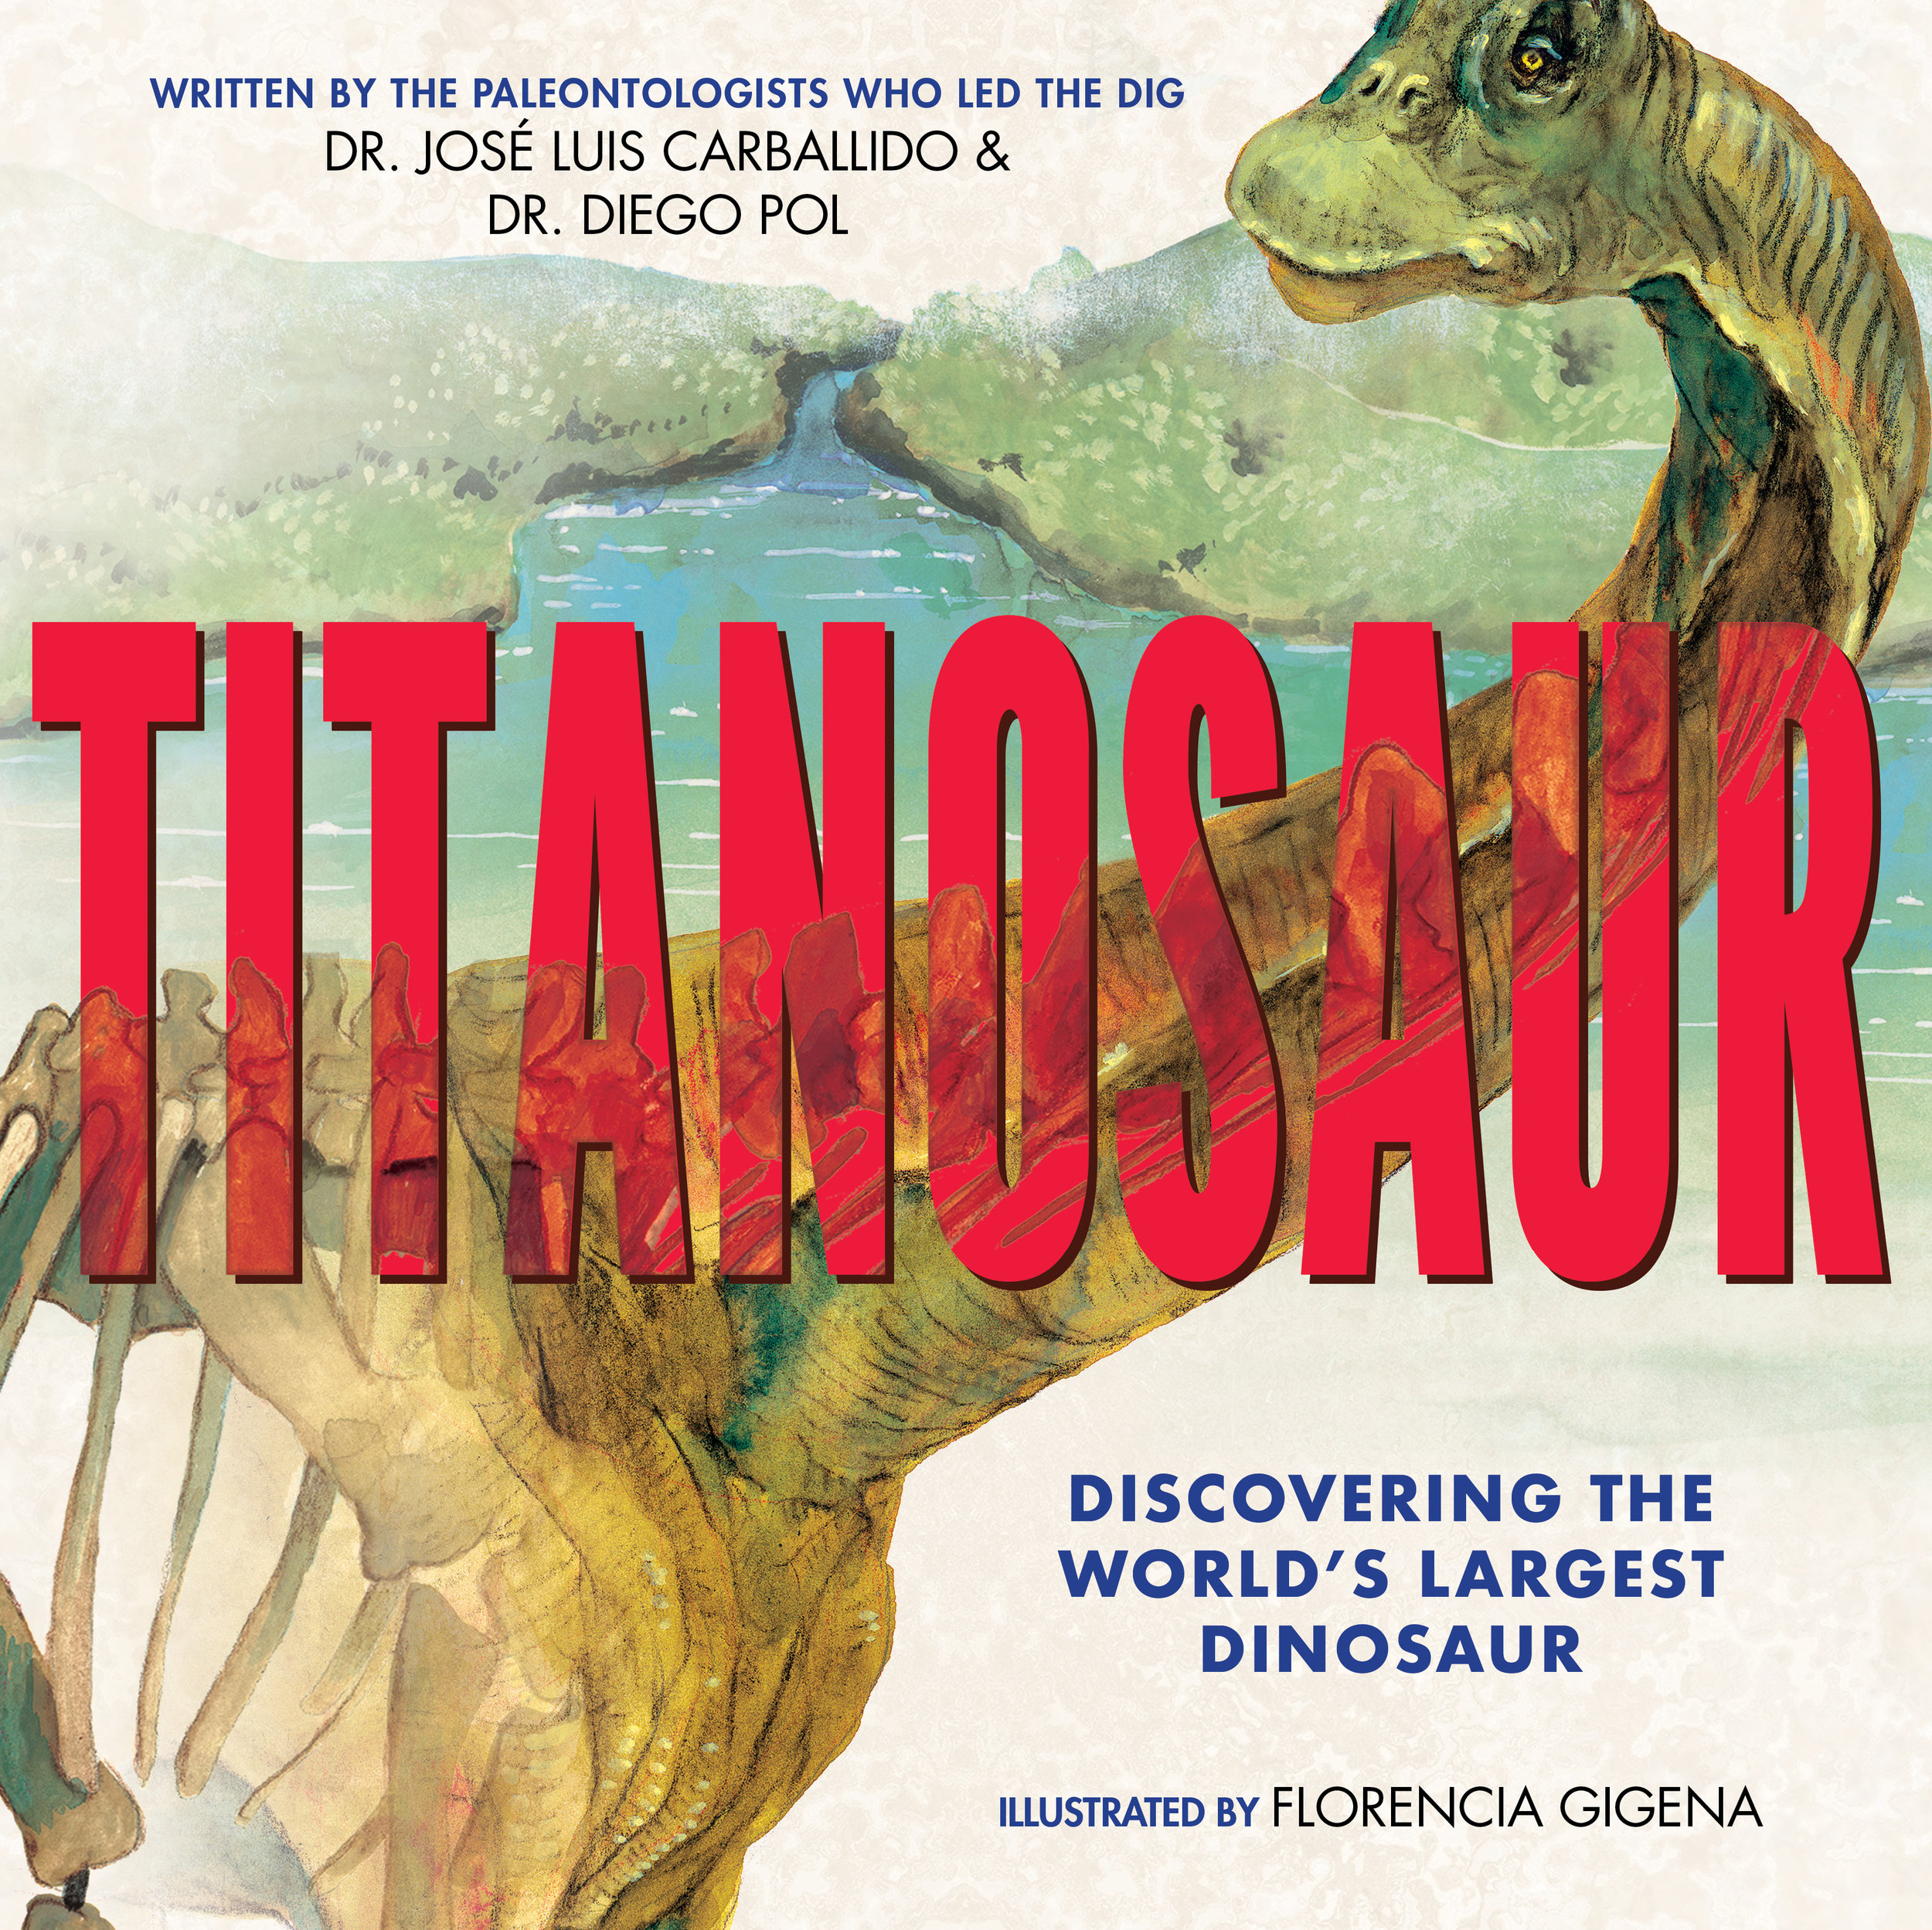 TITANOSAUR Discovering the World's Largest Dinosaur by José Luis Carballido, Diego Pol, and Florencia Gigena